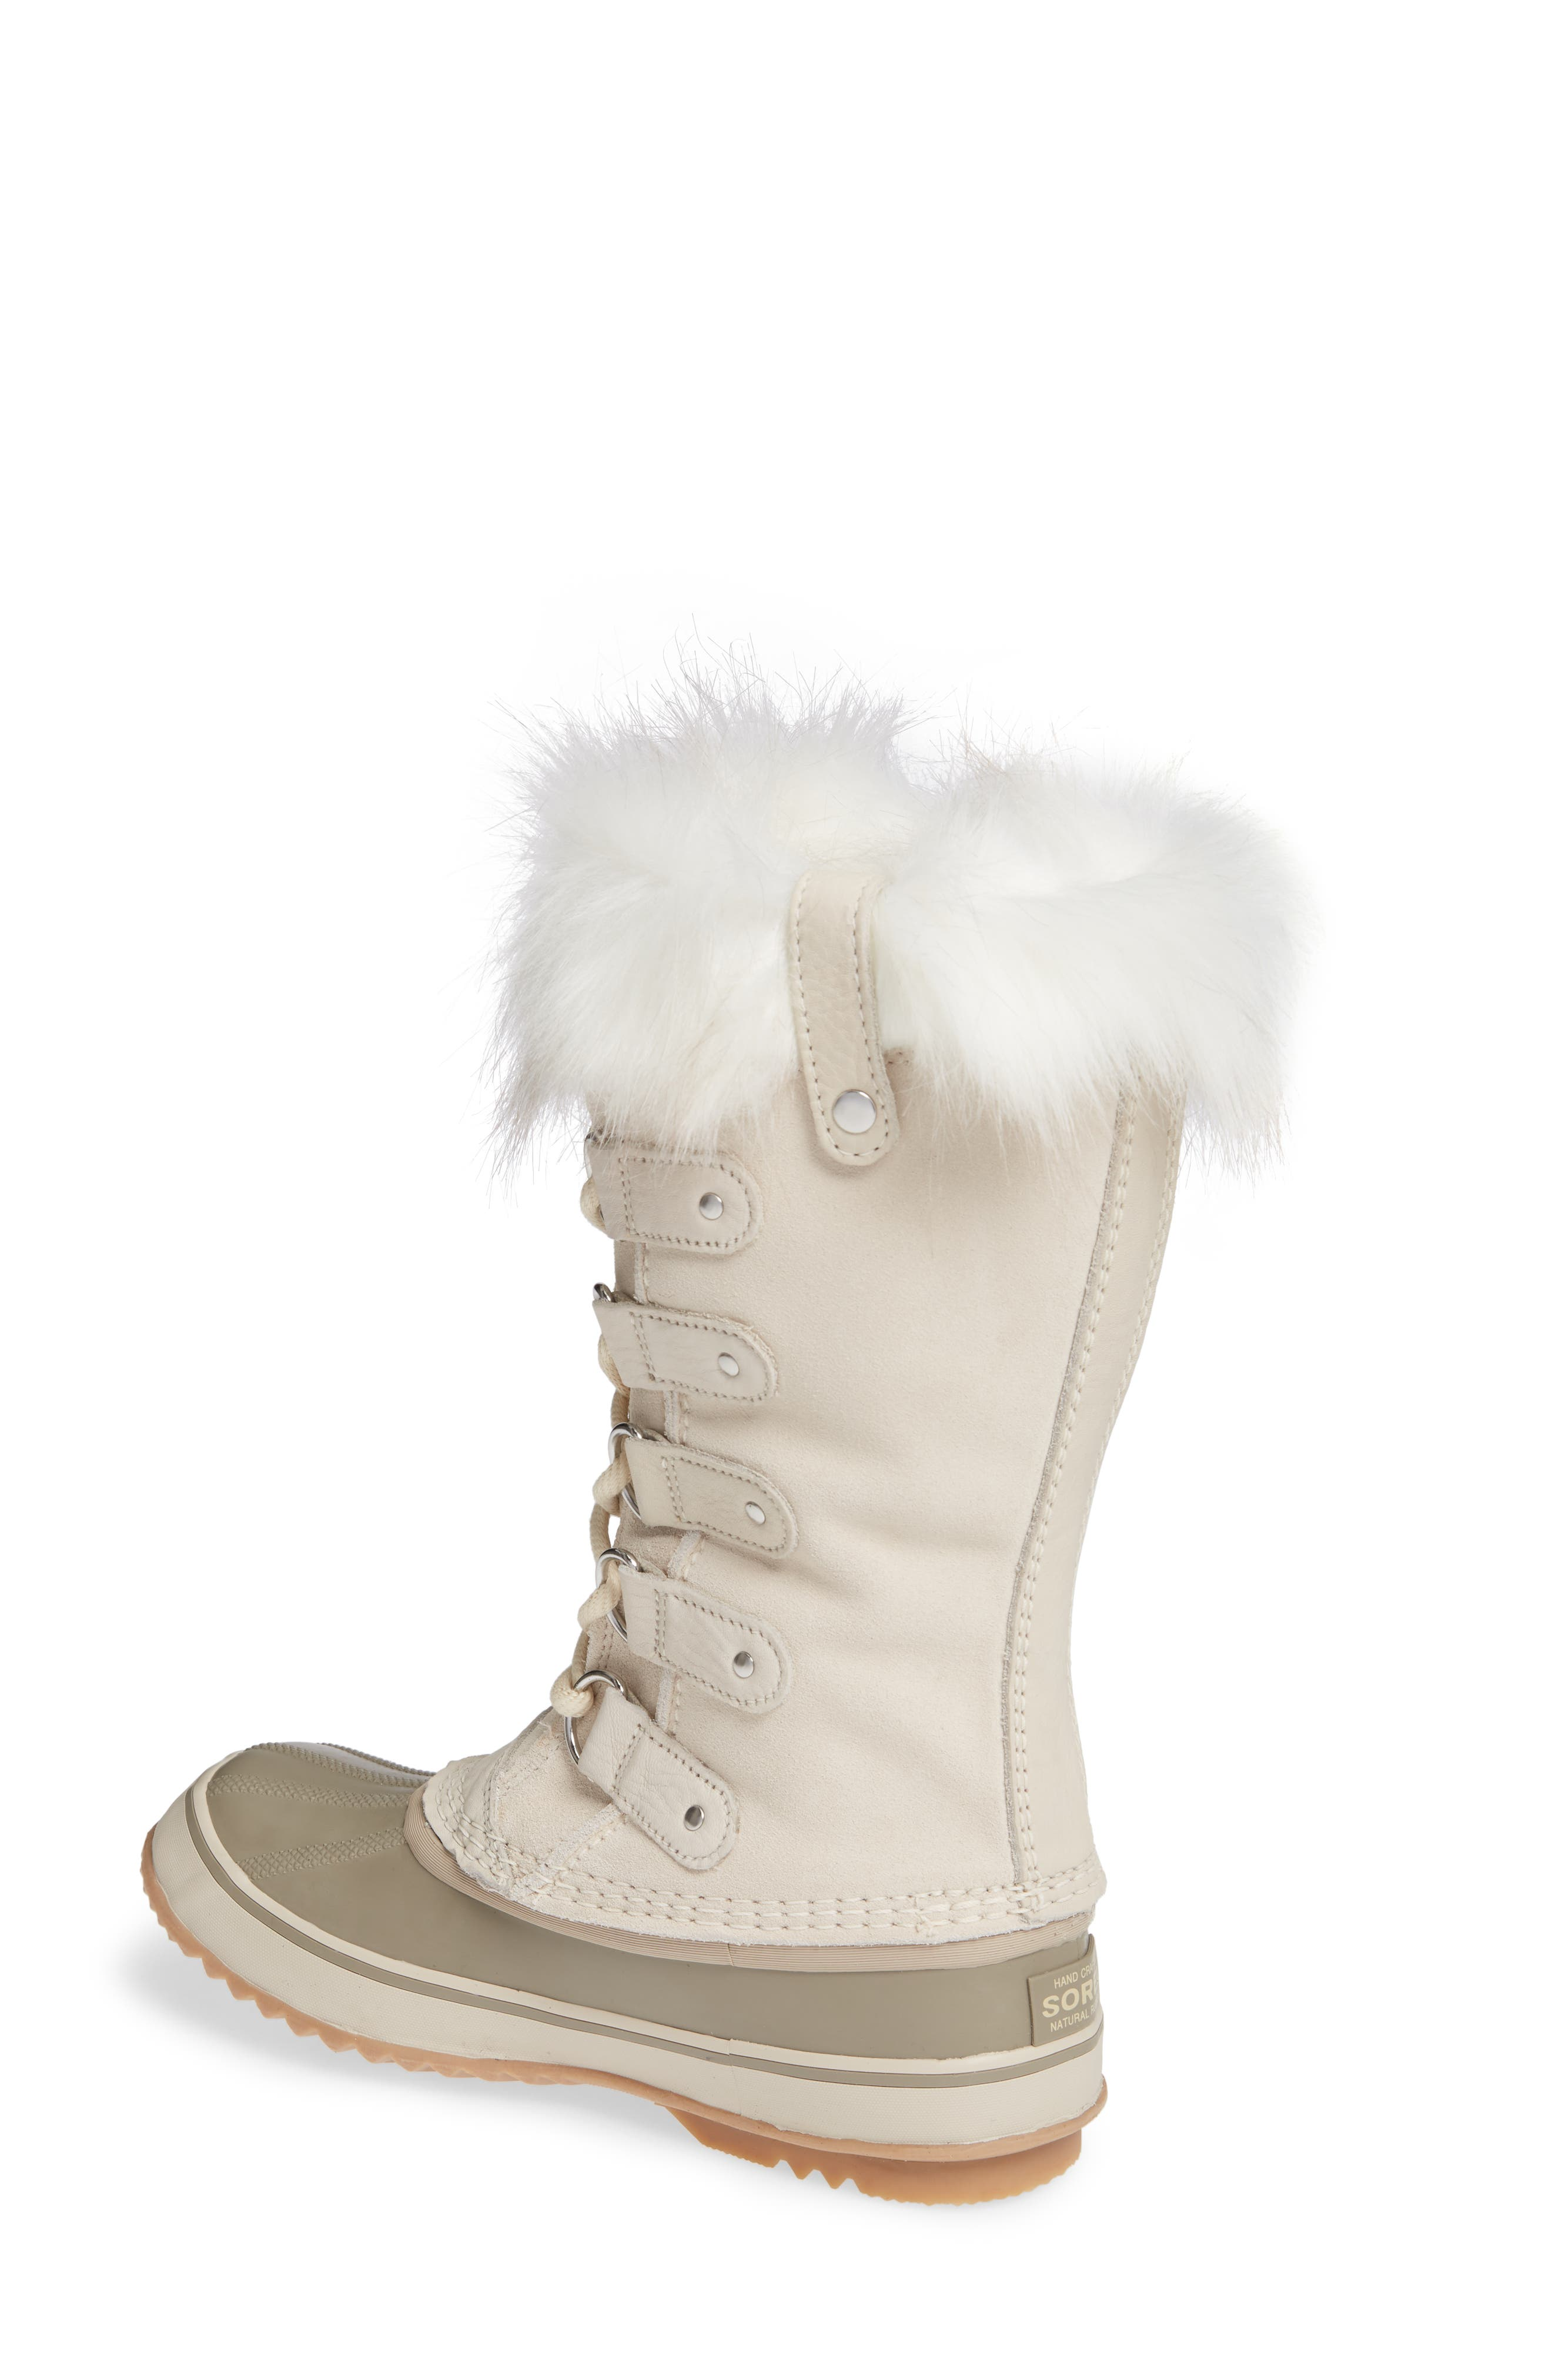 'Joan of Arctic' Waterproof Snow Boot,                             Alternate thumbnail 2, color,                             FAWN